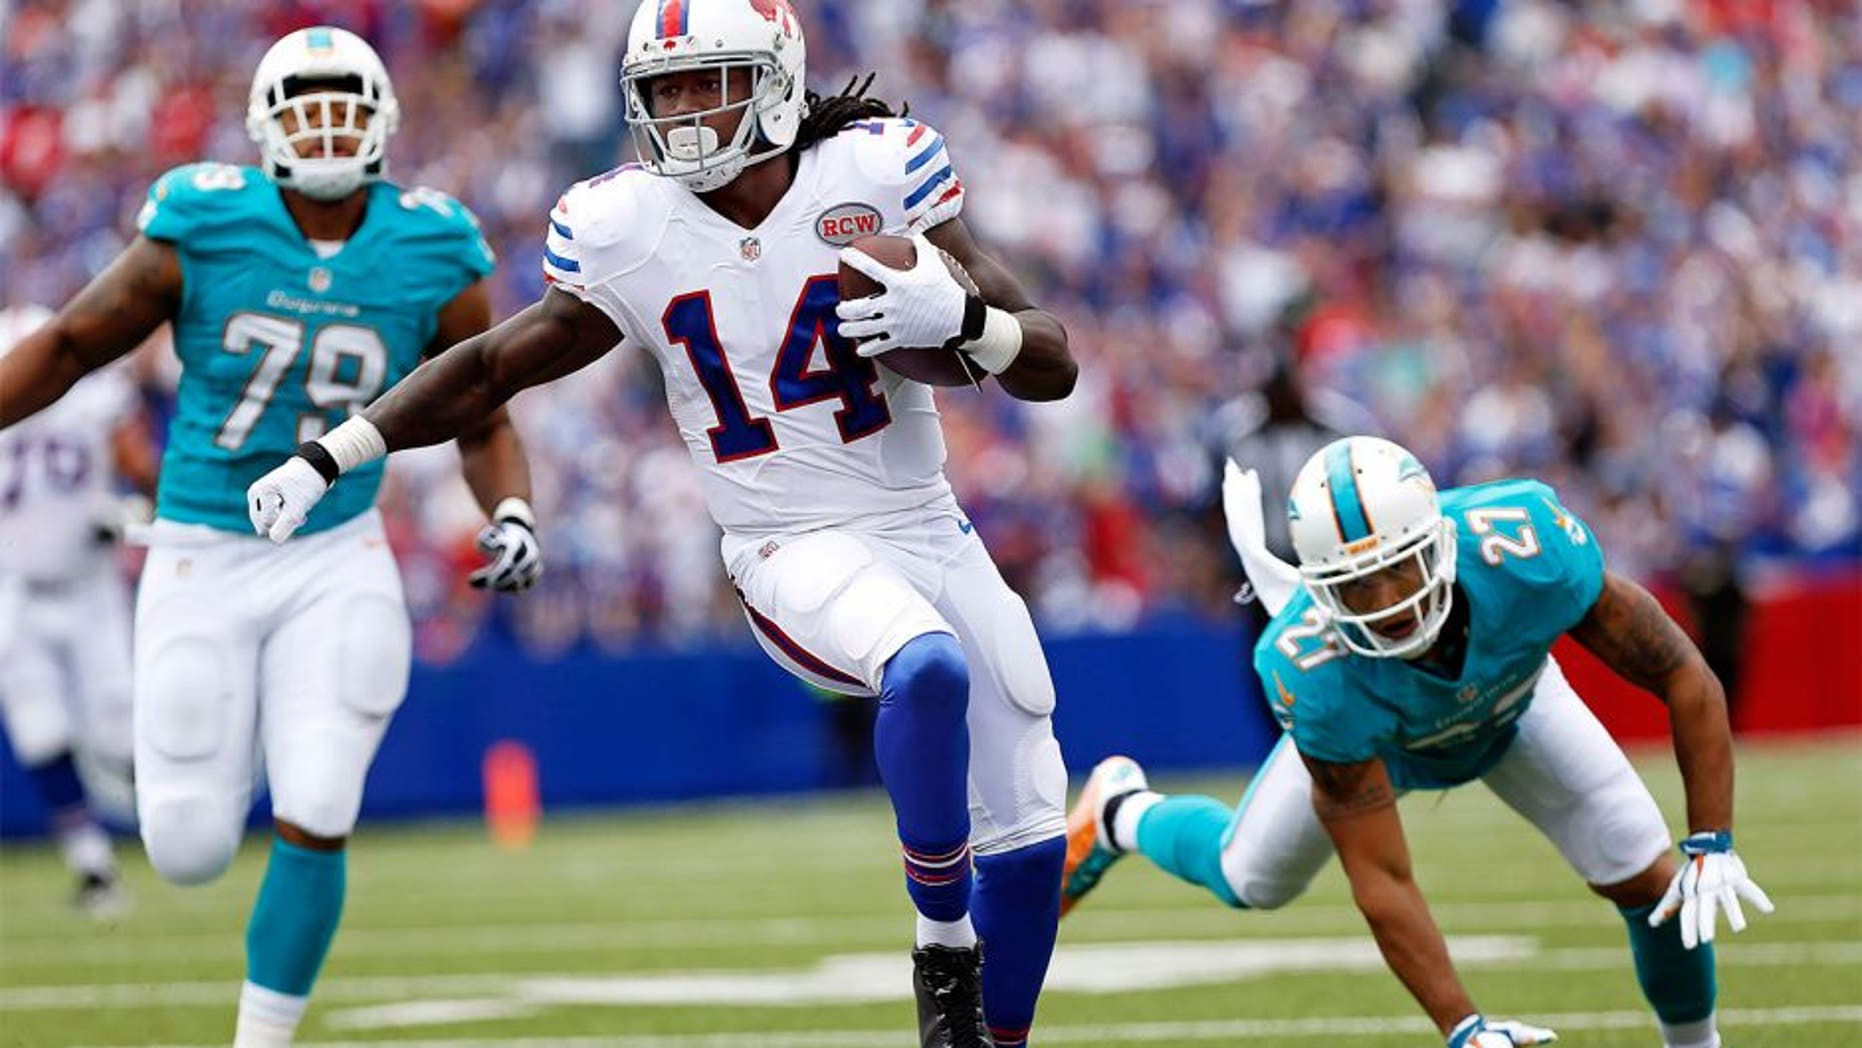 Sep 14, 2014; Orchard Park, NY, USA; Buffalo Bills wide receiver Sammy Watkins (14) runs after a catch as Miami Dolphins strong safety Jimmy Wilson (27) pursues during the first half at Ralph Wilson Stadium. Mandatory Credit: Kevin Hoffman-USA TODAY Sports